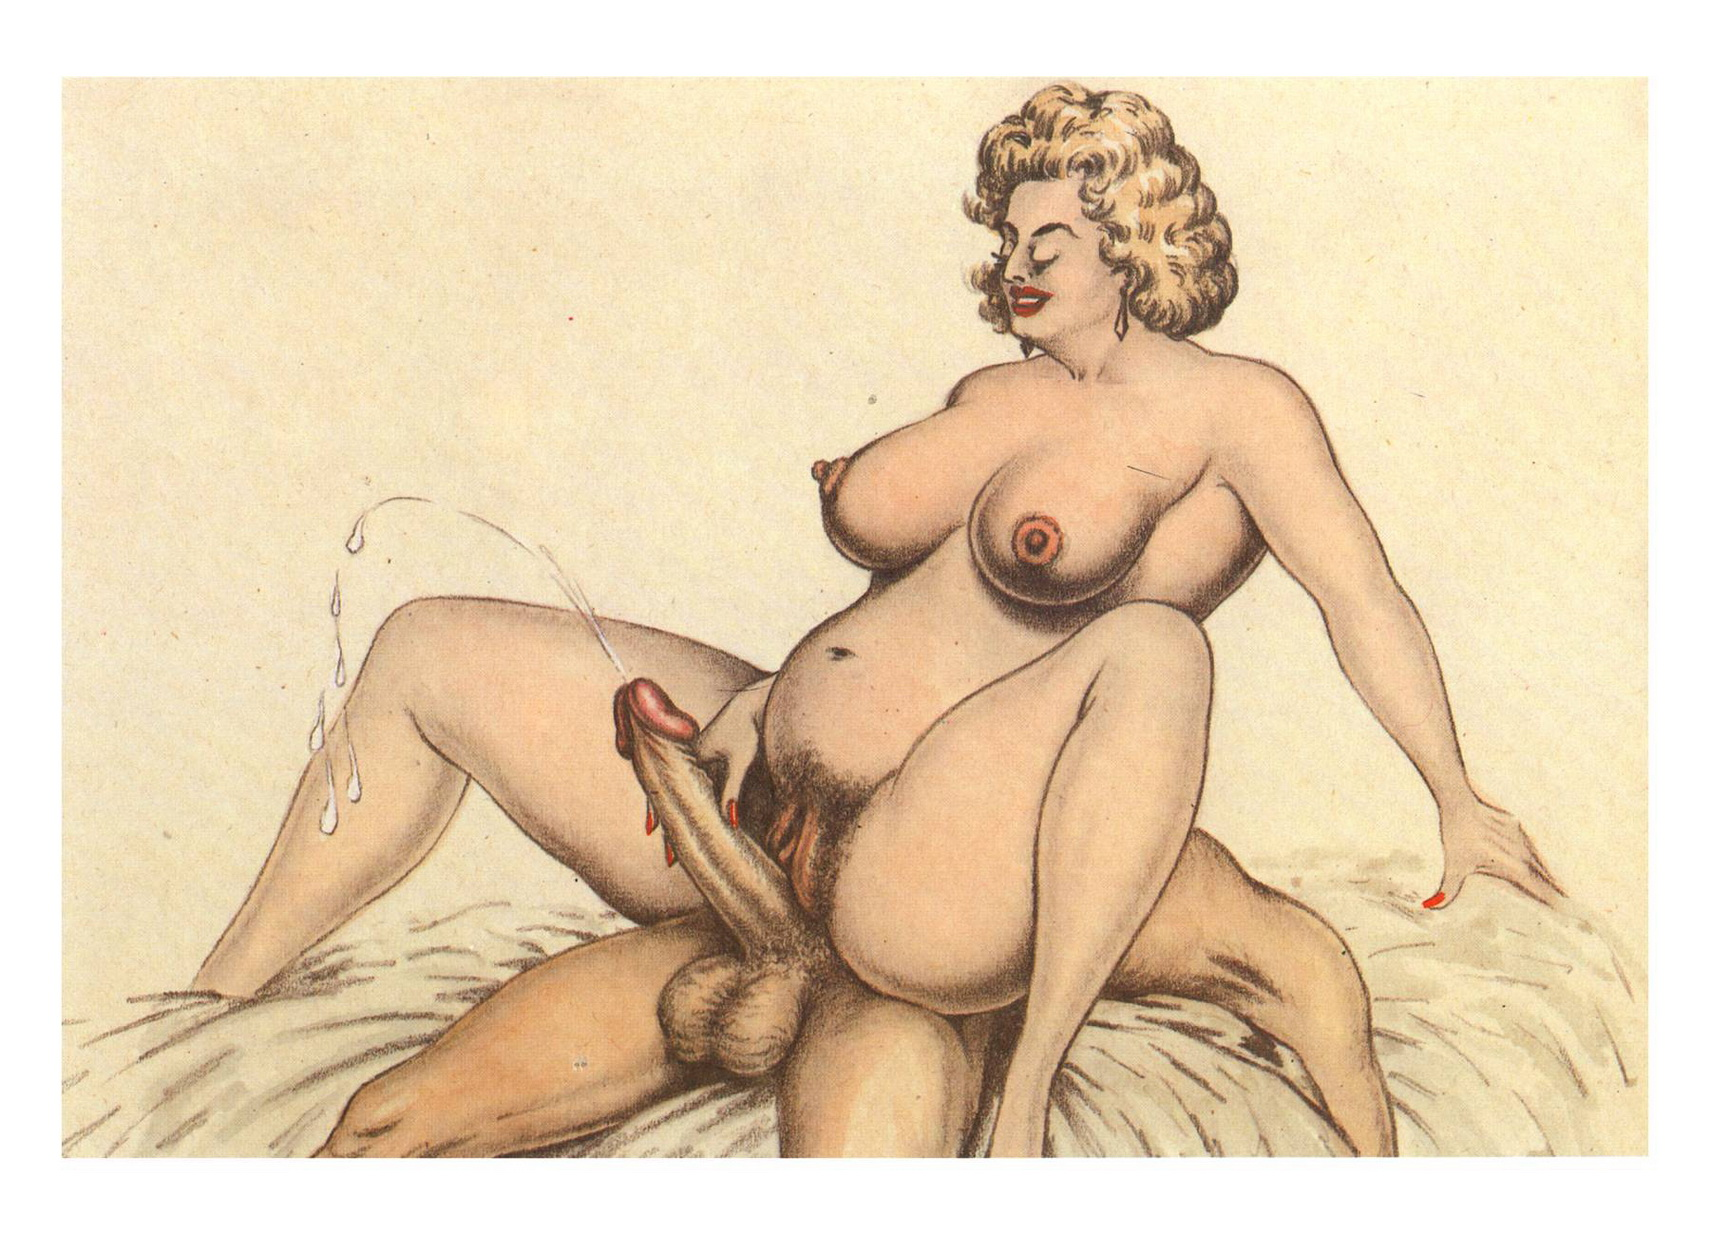 nude comic art gallery jpg 1080x810